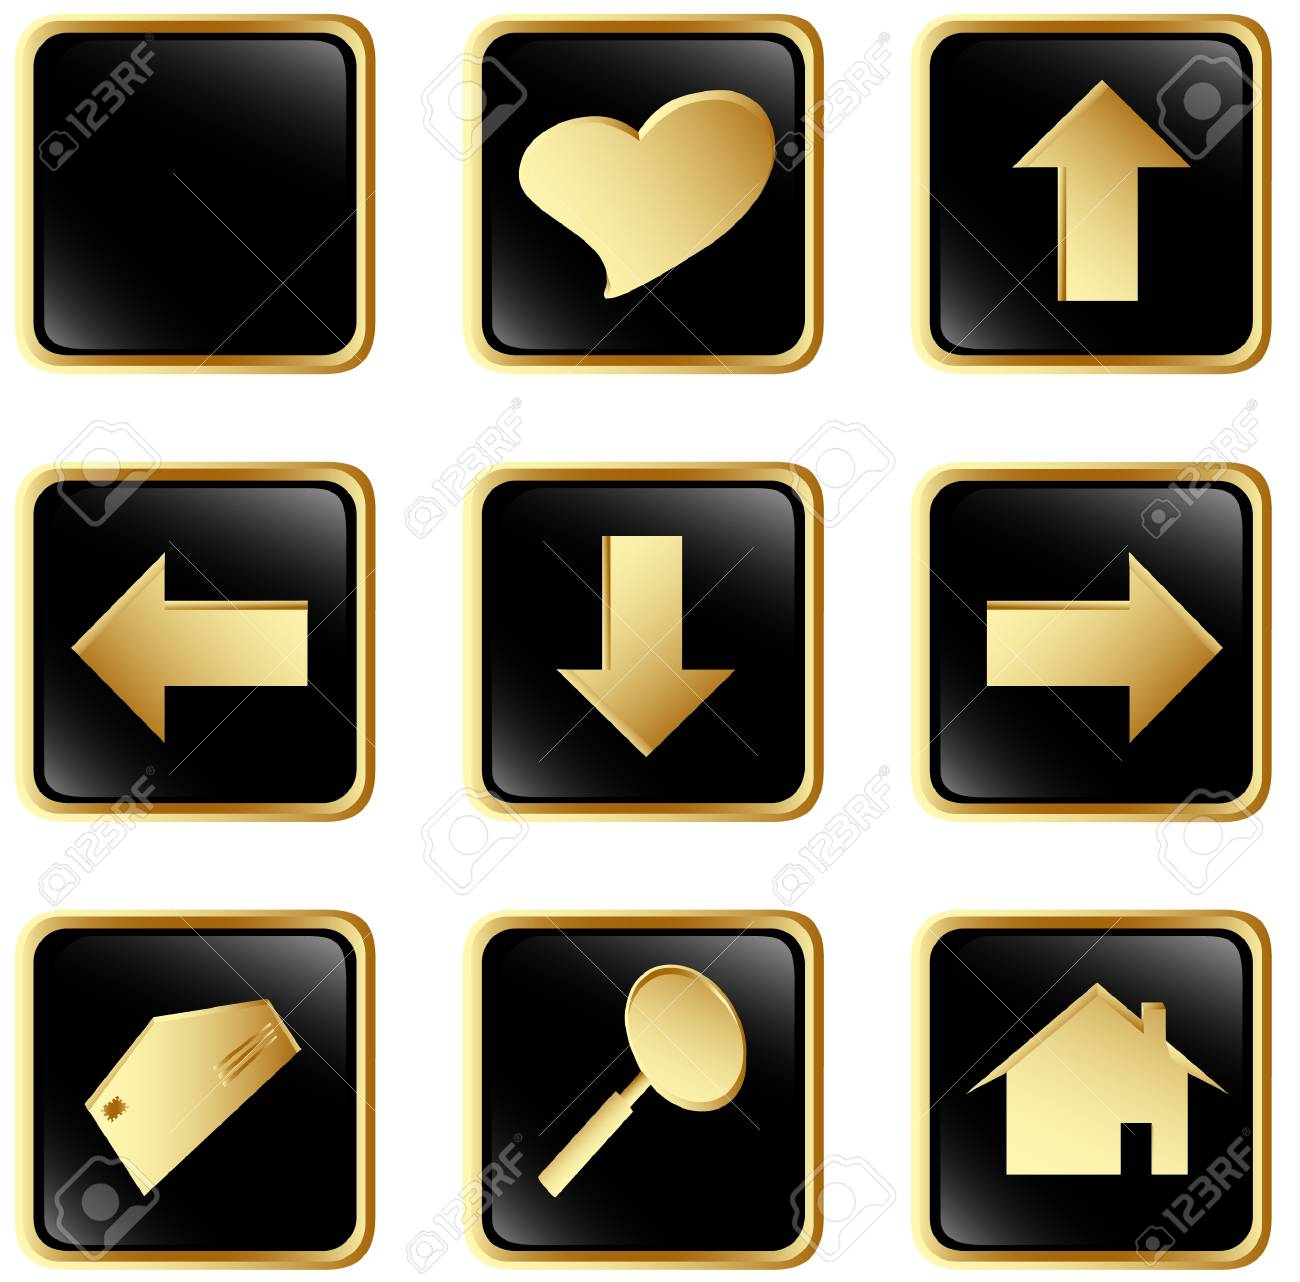 Illustration of the black square web buttons Stock Vector - 4501169